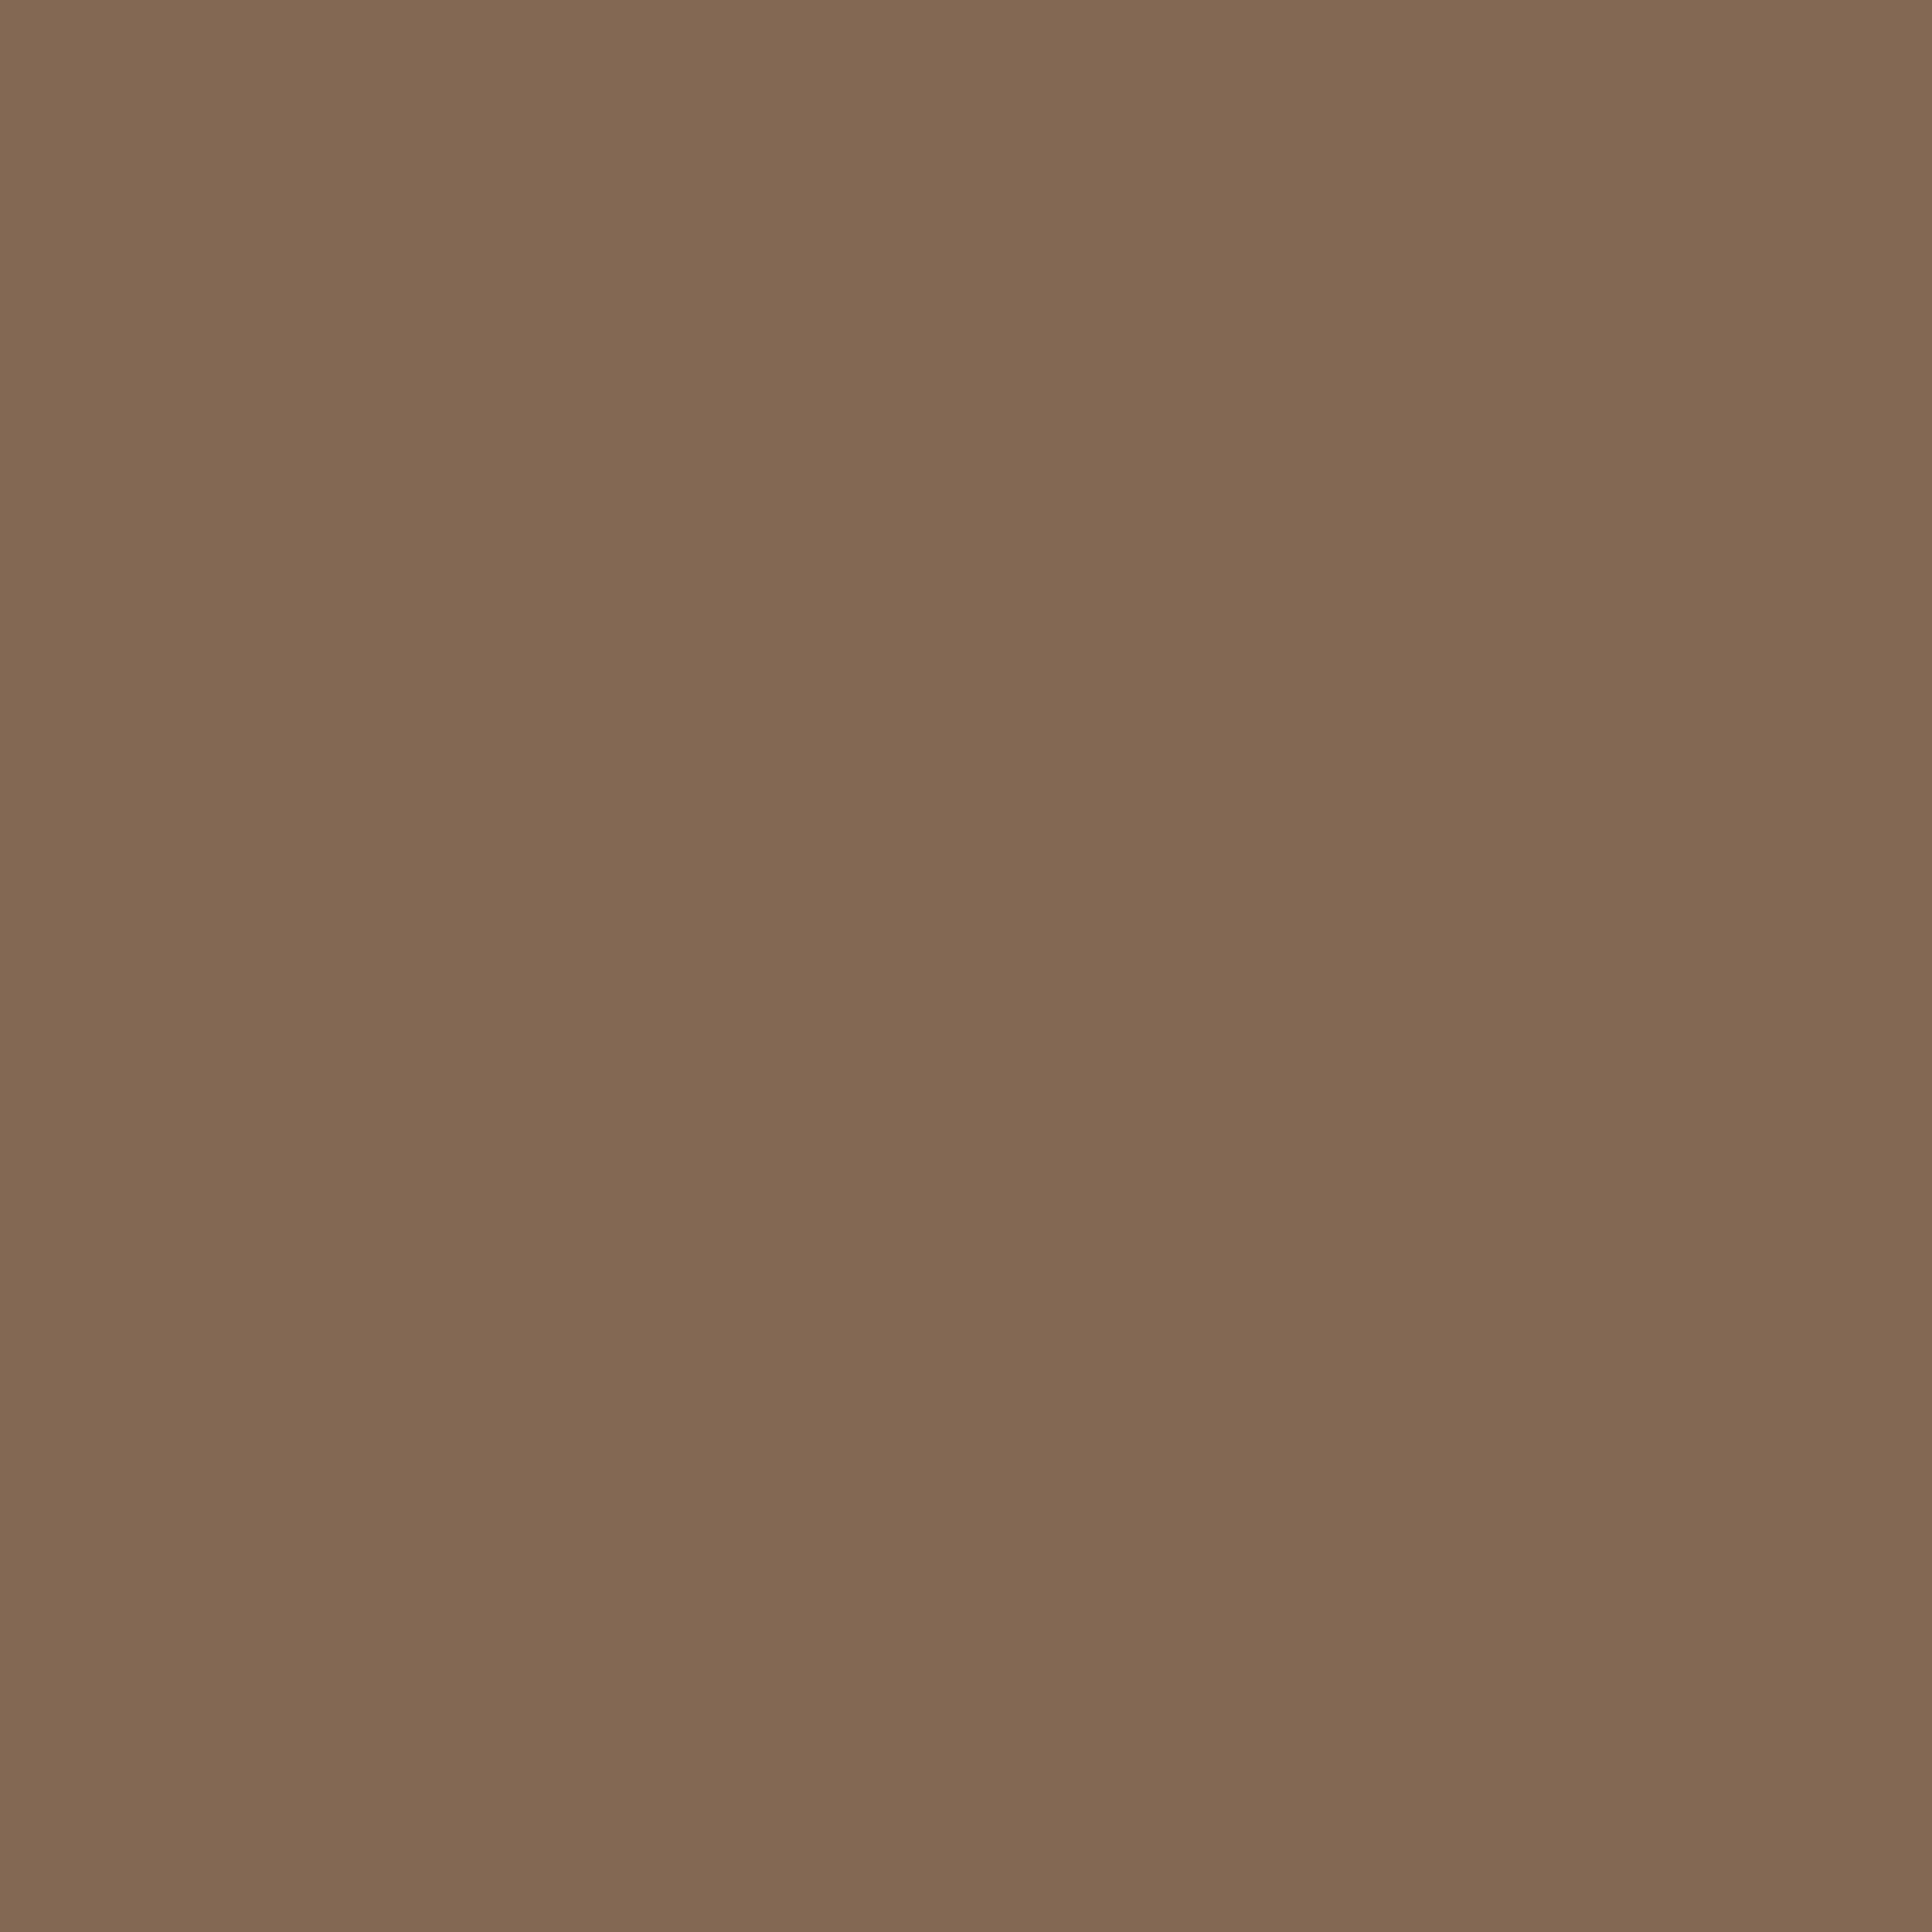 2732x2732 Pastel Brown Solid Color Background